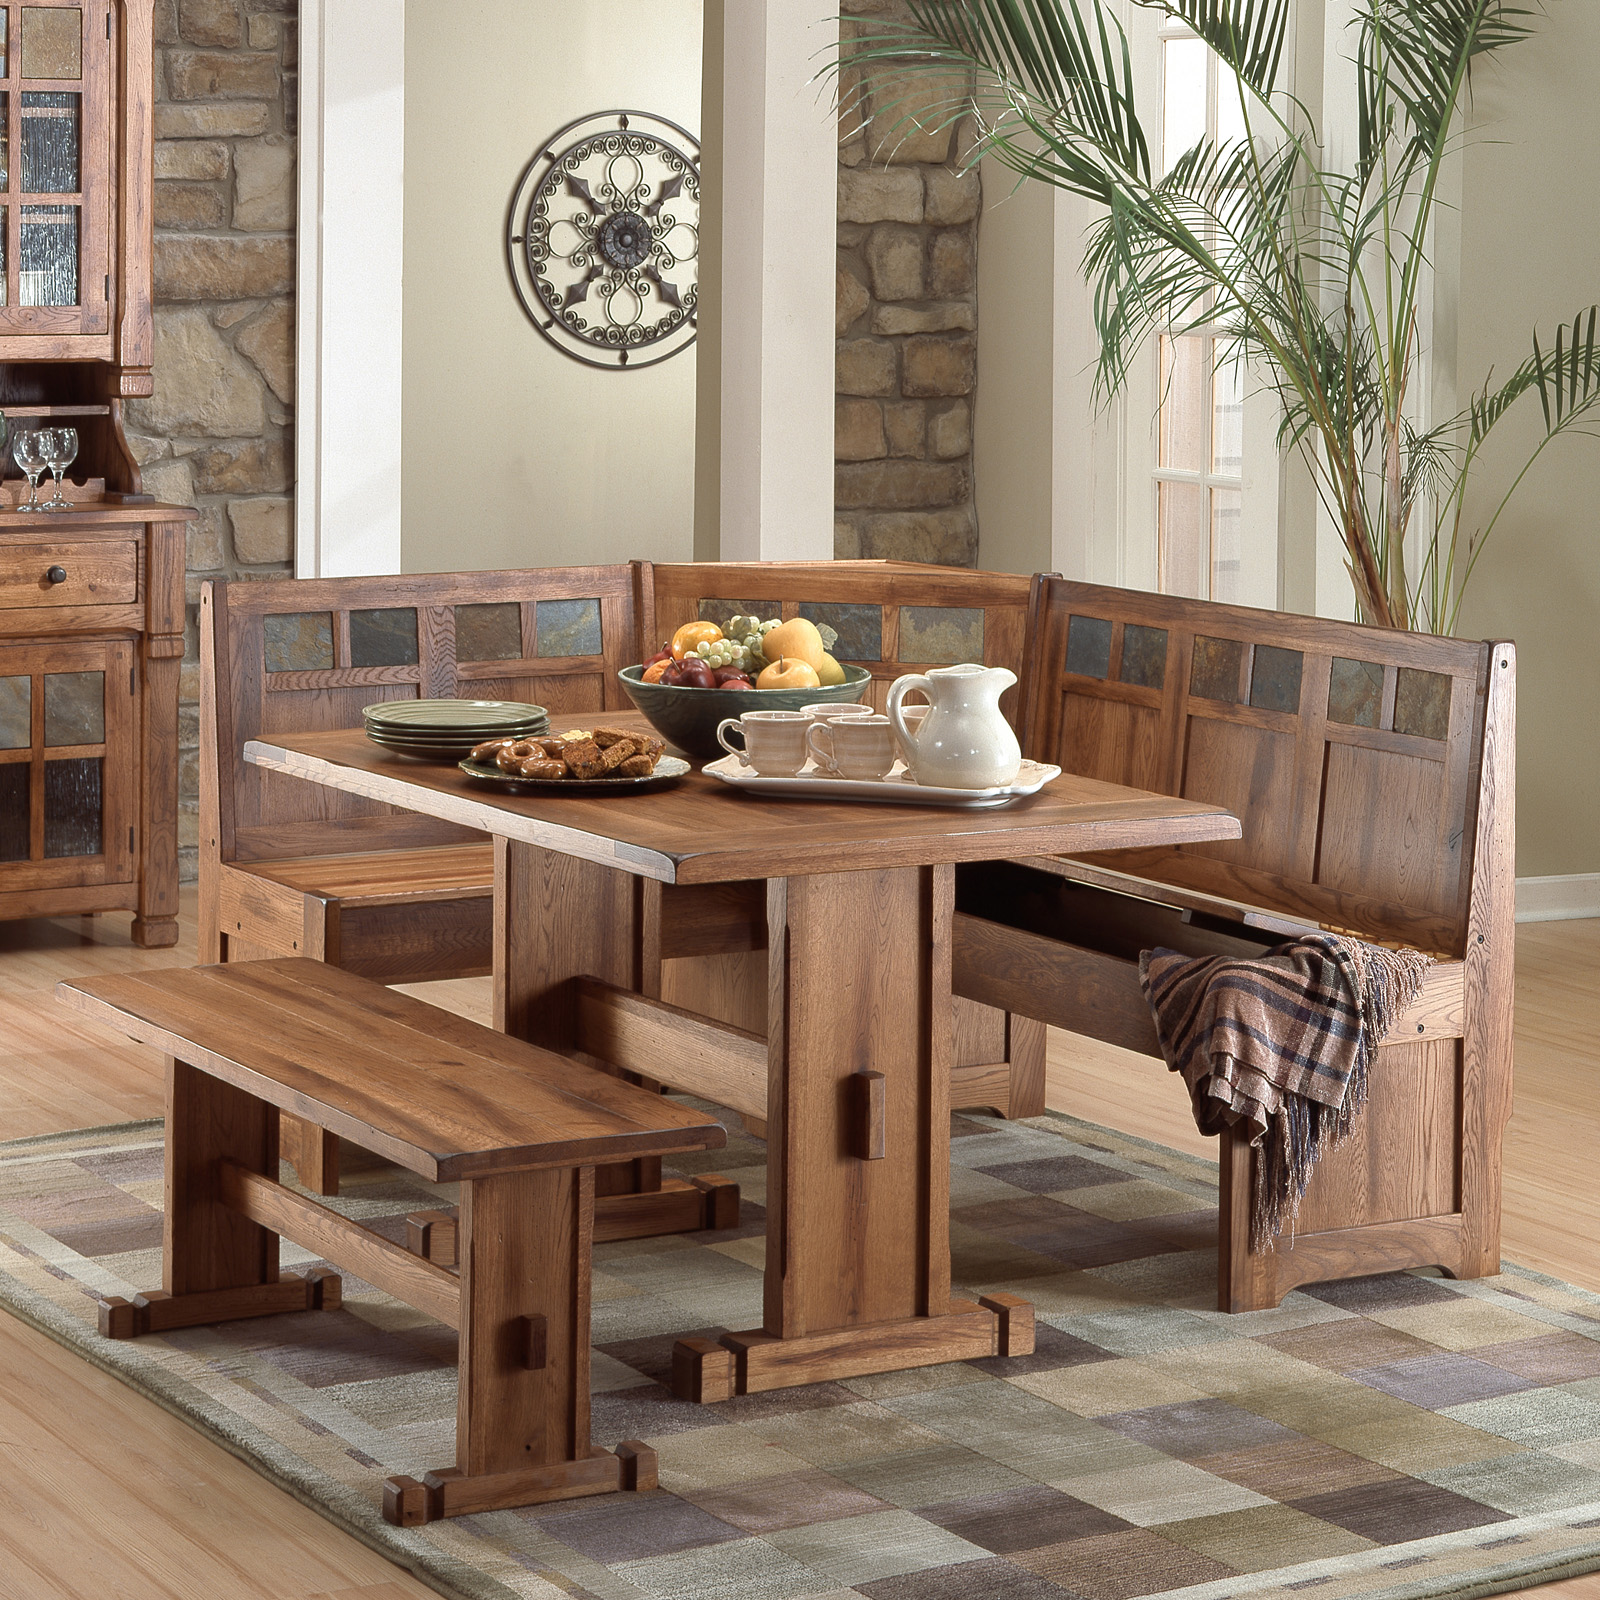 Corner Bench Kitchen Table Set A Kitchen And Dining Nook: Sunny Designs Sedona 4 Piece Breakfast Nook Set